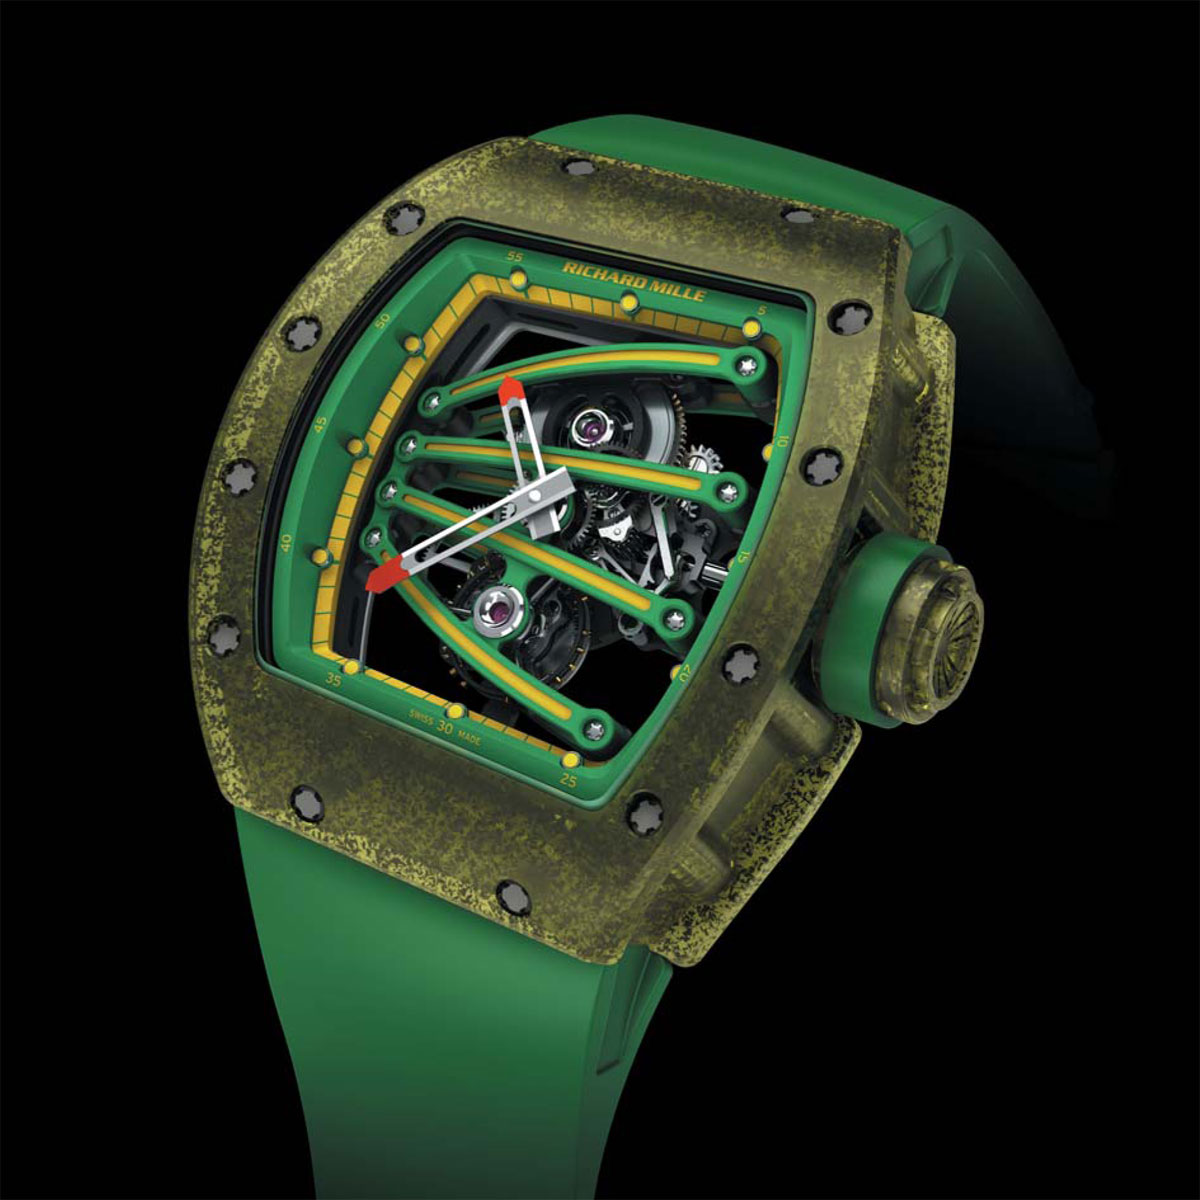 Richard Mille RM 59-01 Tourbillon for Yohan Blake at 2013 SIHH